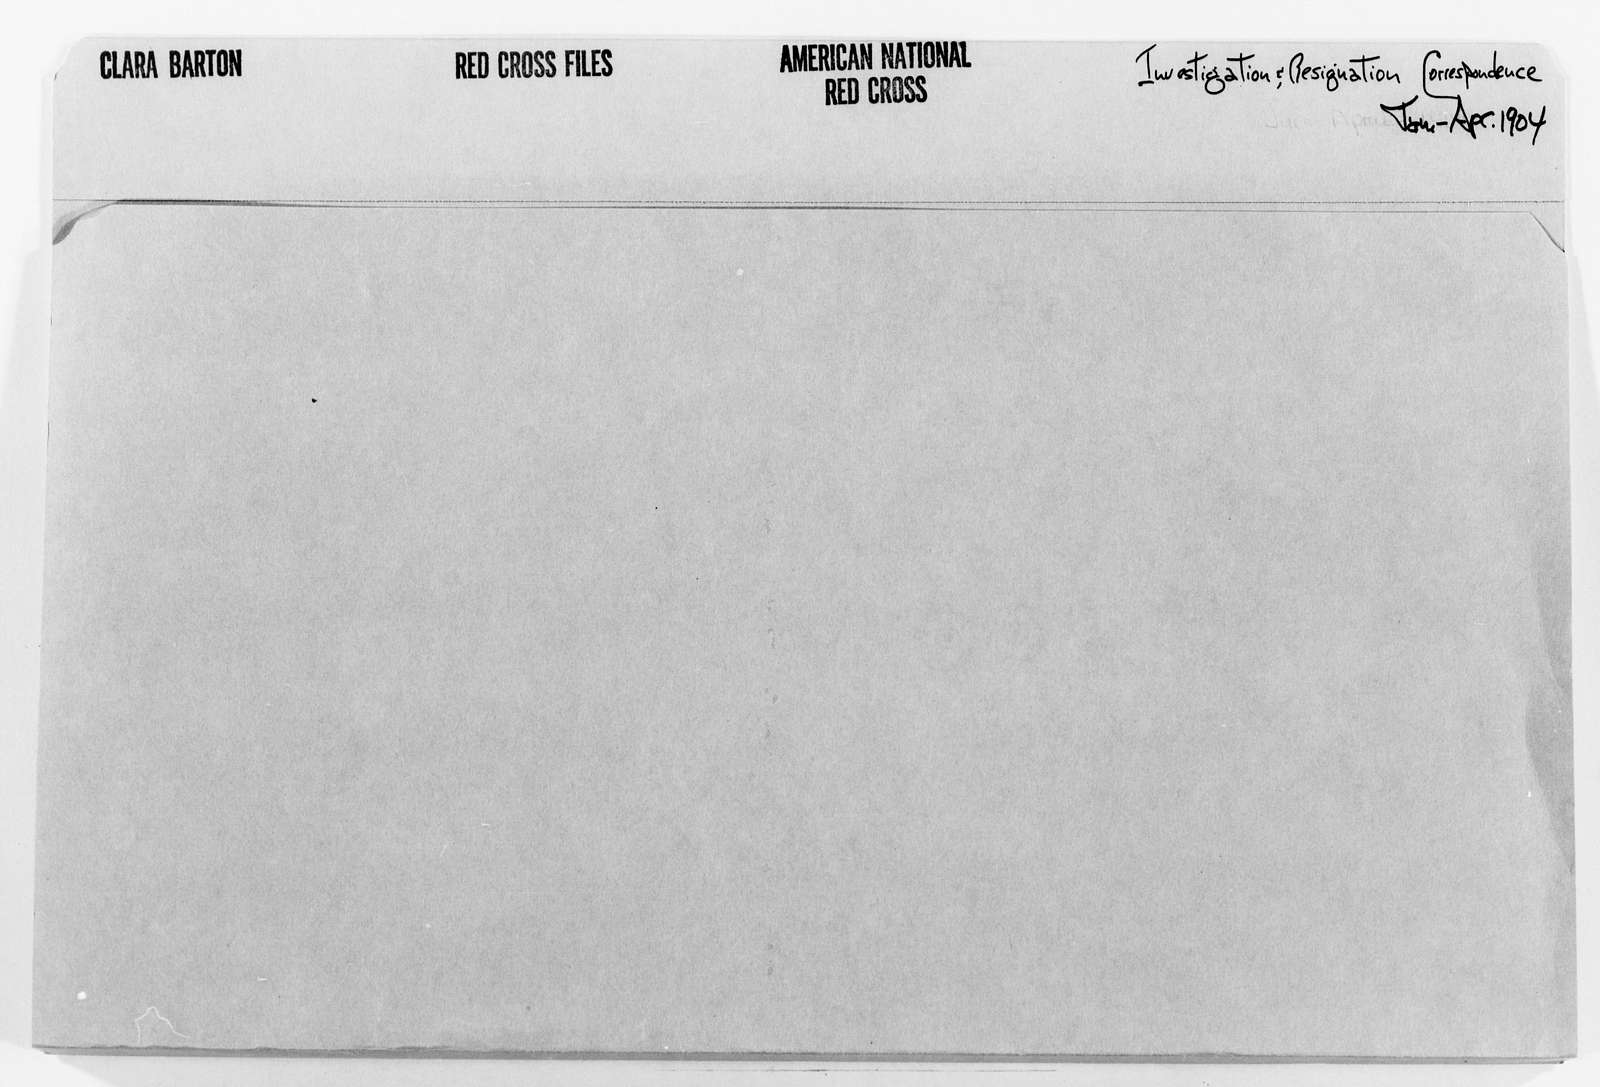 Clara Barton Papers: Red Cross File, 1863-1957; American National Red Cross, 1878-1957; Investigation and resignation; Correspondence; 1904-1910